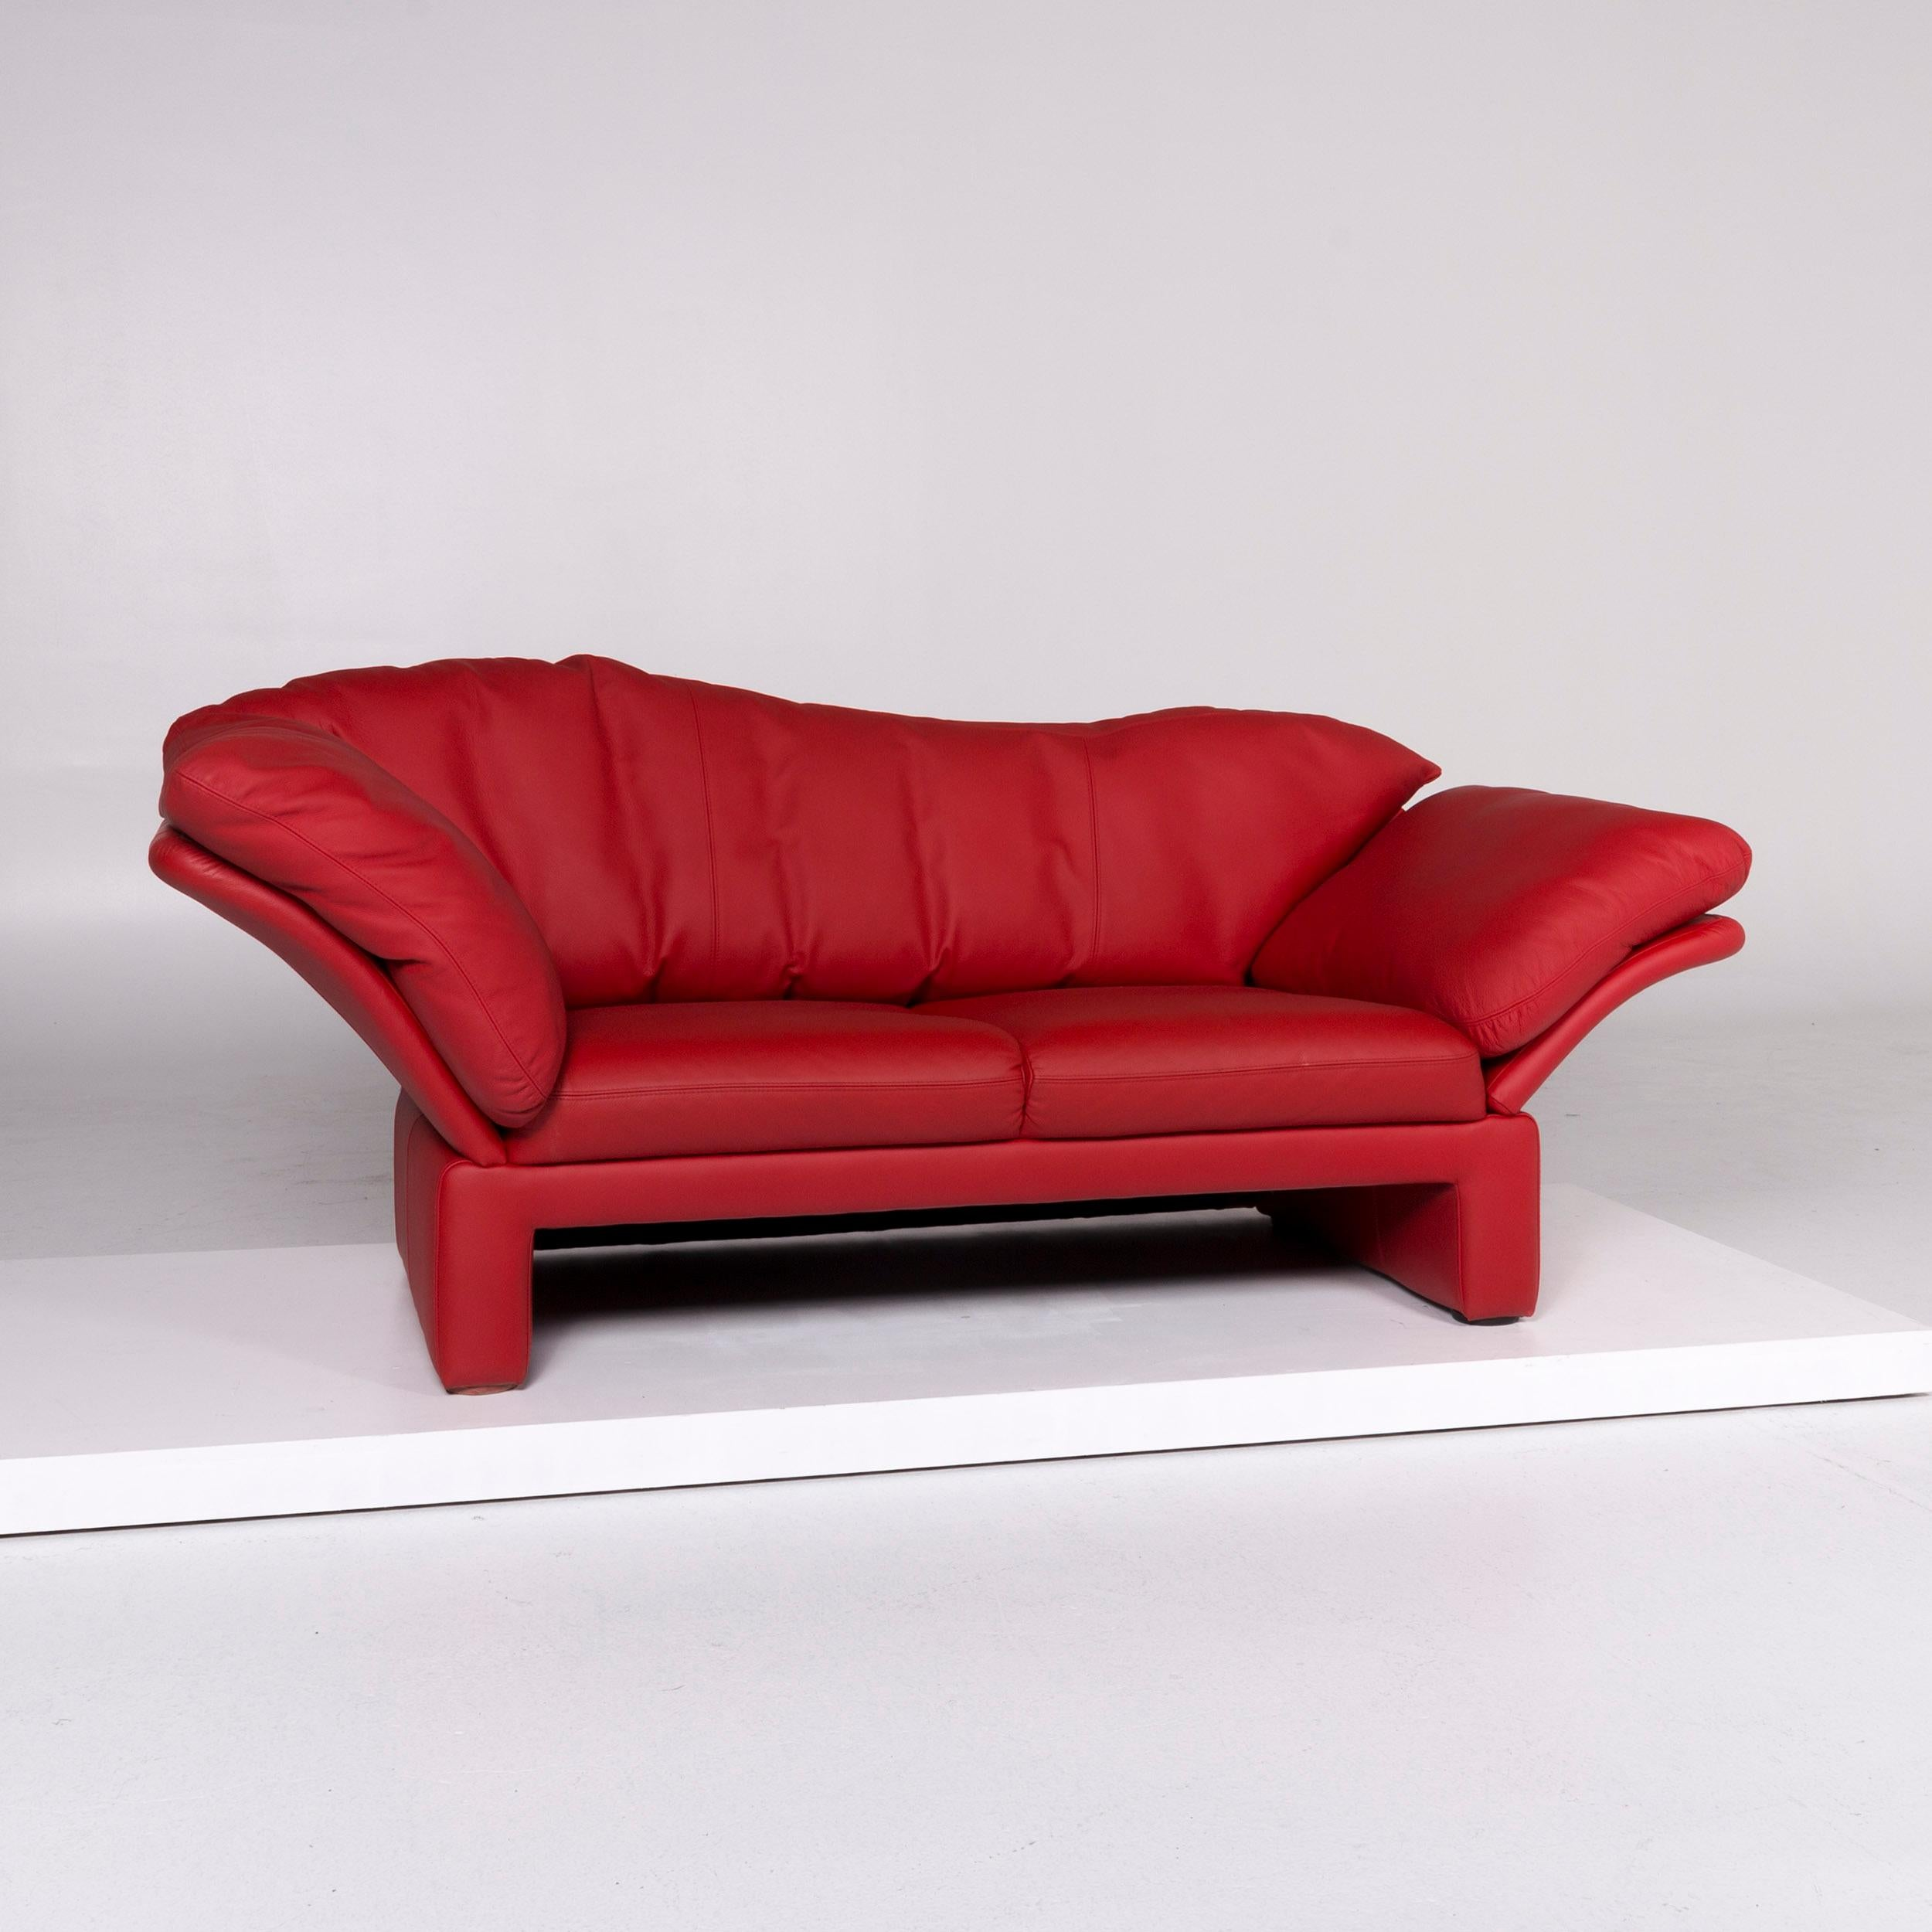 Brühl And Sippold Prelude Designer Leder Sofa Rot Zweisitzer For Sale At 1stdibs